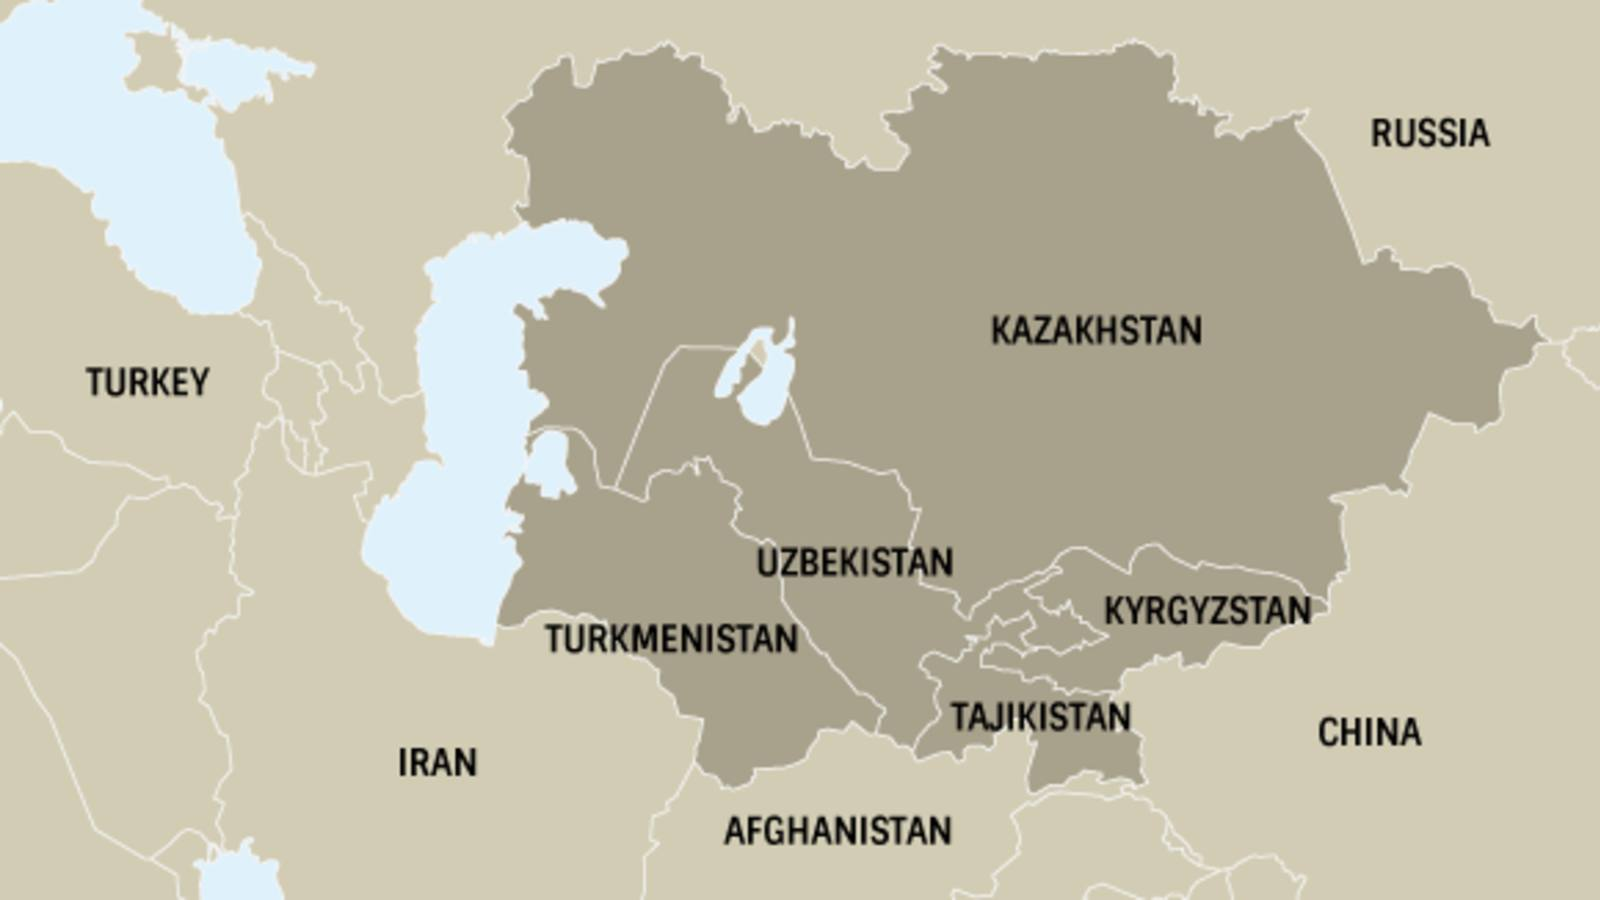 Russia tightens hold on Kyrgyzstan - Nikkei Asian Review on commonwealth of independent states russia map, jewish autonomous oblast russia map, kalmykia russia map, united states russia map, bermuda russia map, slovakia russia map, dushanbe russia map, france russia map, croatia russia map, albania russia map, north asia russia map, iceland russia map, latvia russia map, malta russia map, ashgabat russia map, south ossetia russia map, canada russia map, samarkand russia map, tobol river russia map, india russia map,